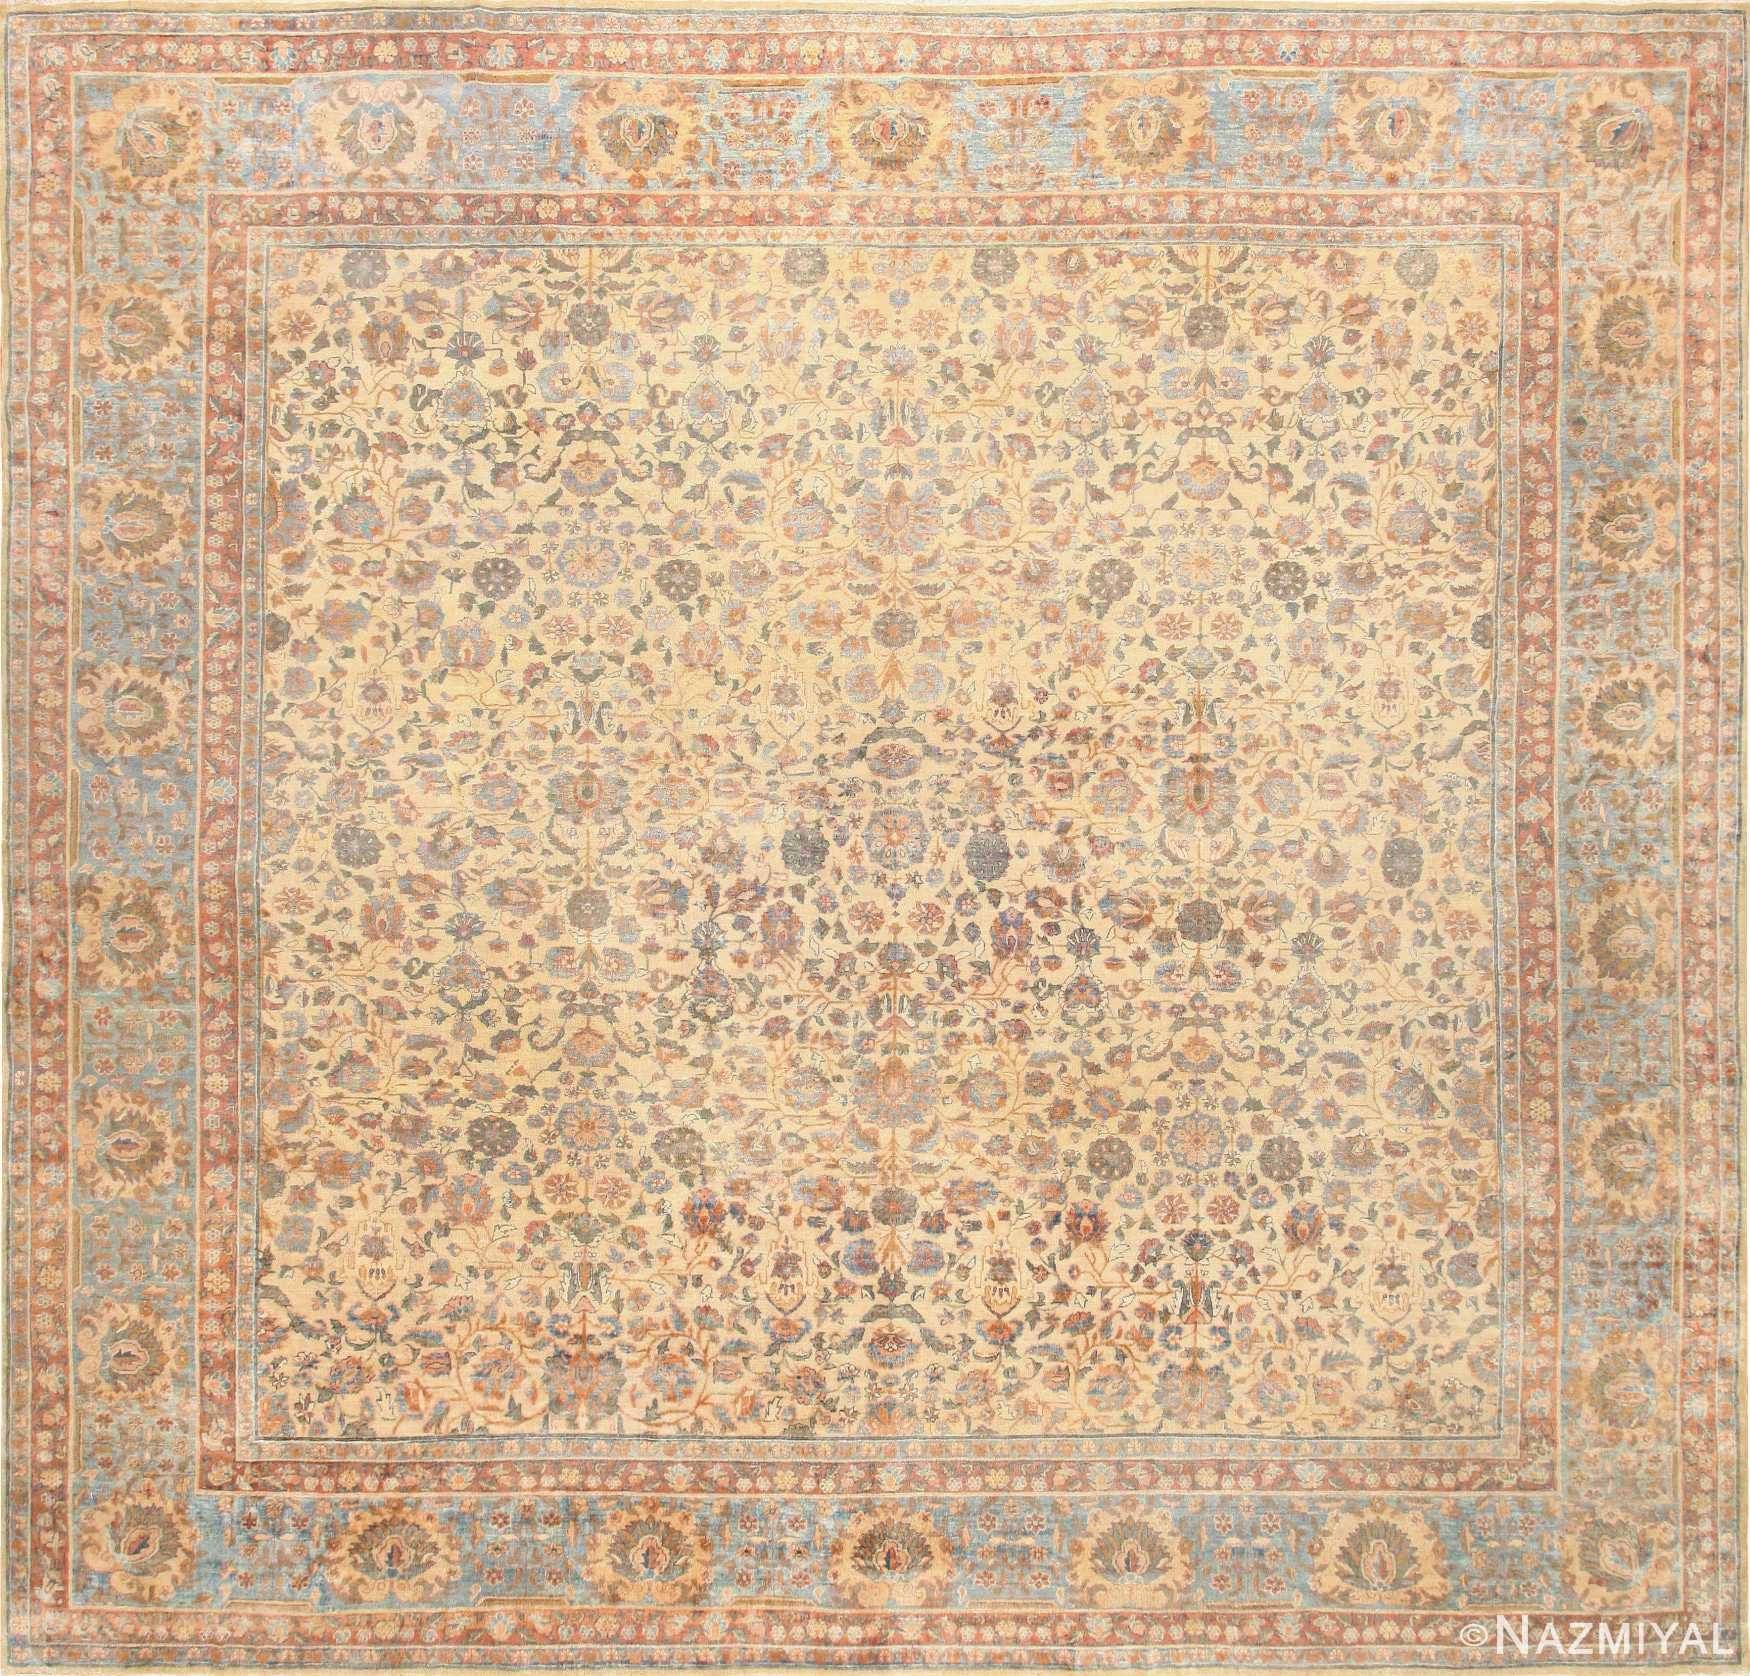 Oriental Rugs Grand Rapids: Room Size Rugs And Antique Room Size Carpets